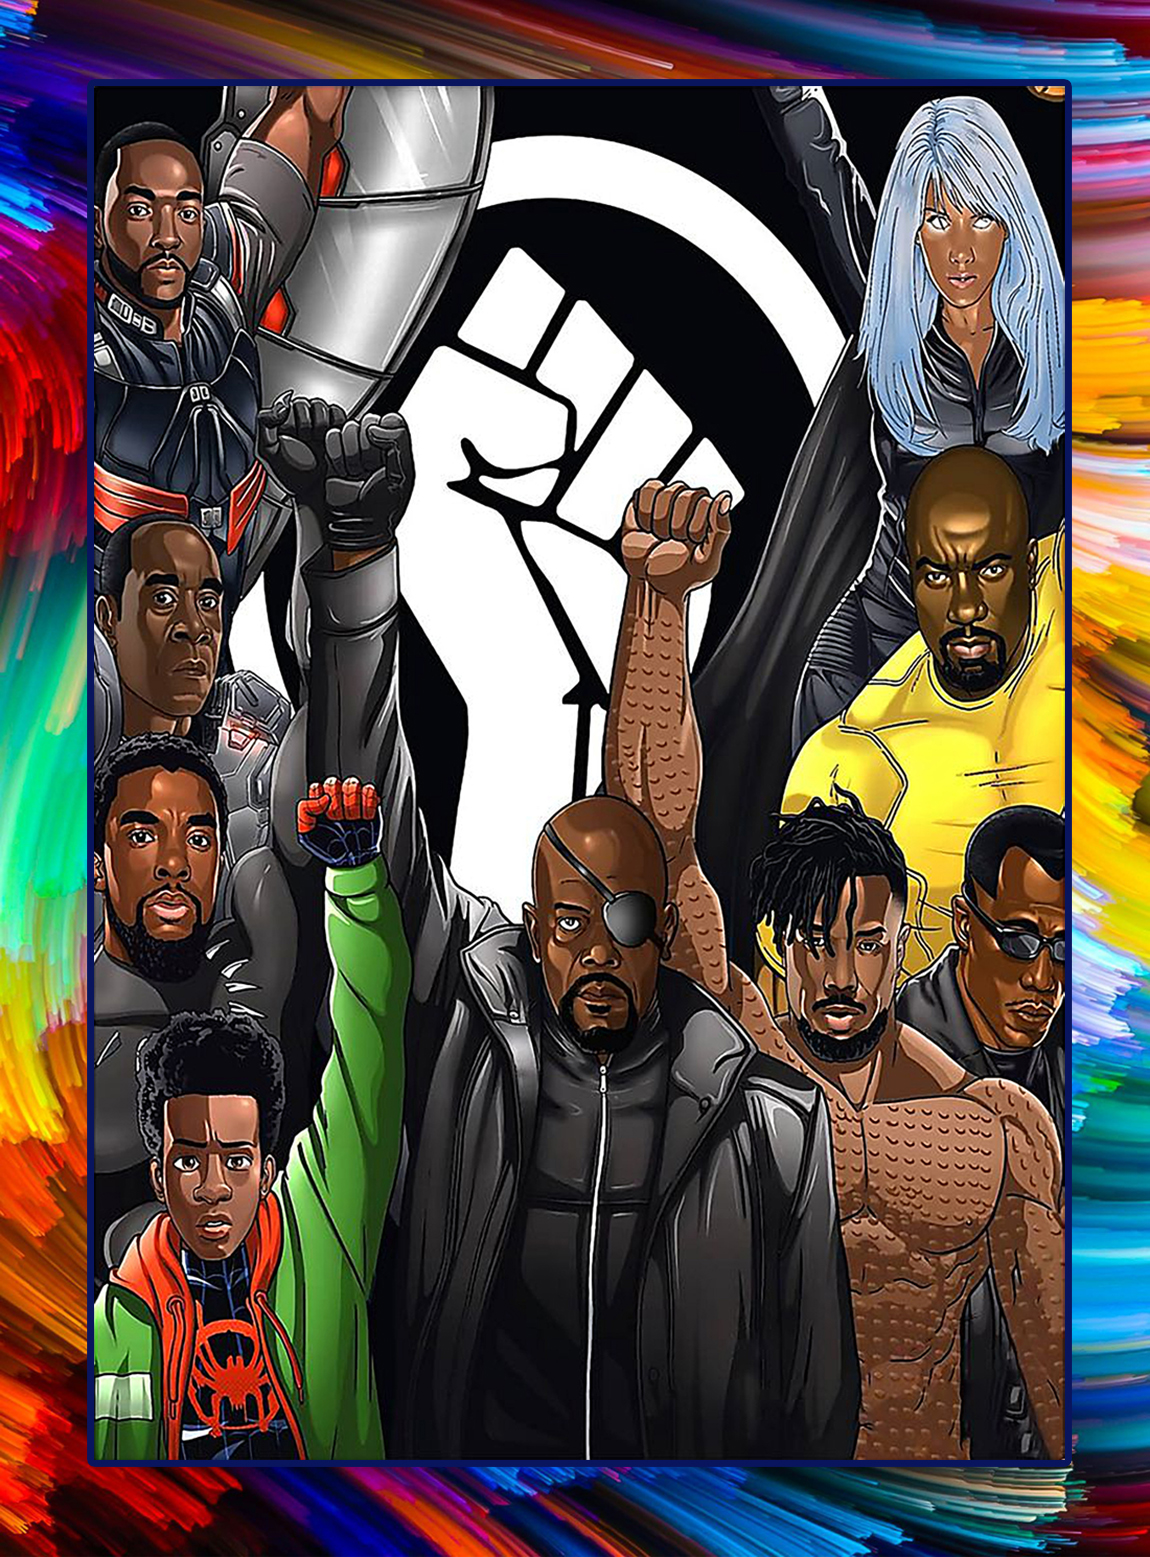 Black superheroes raised fist black power poster - A3